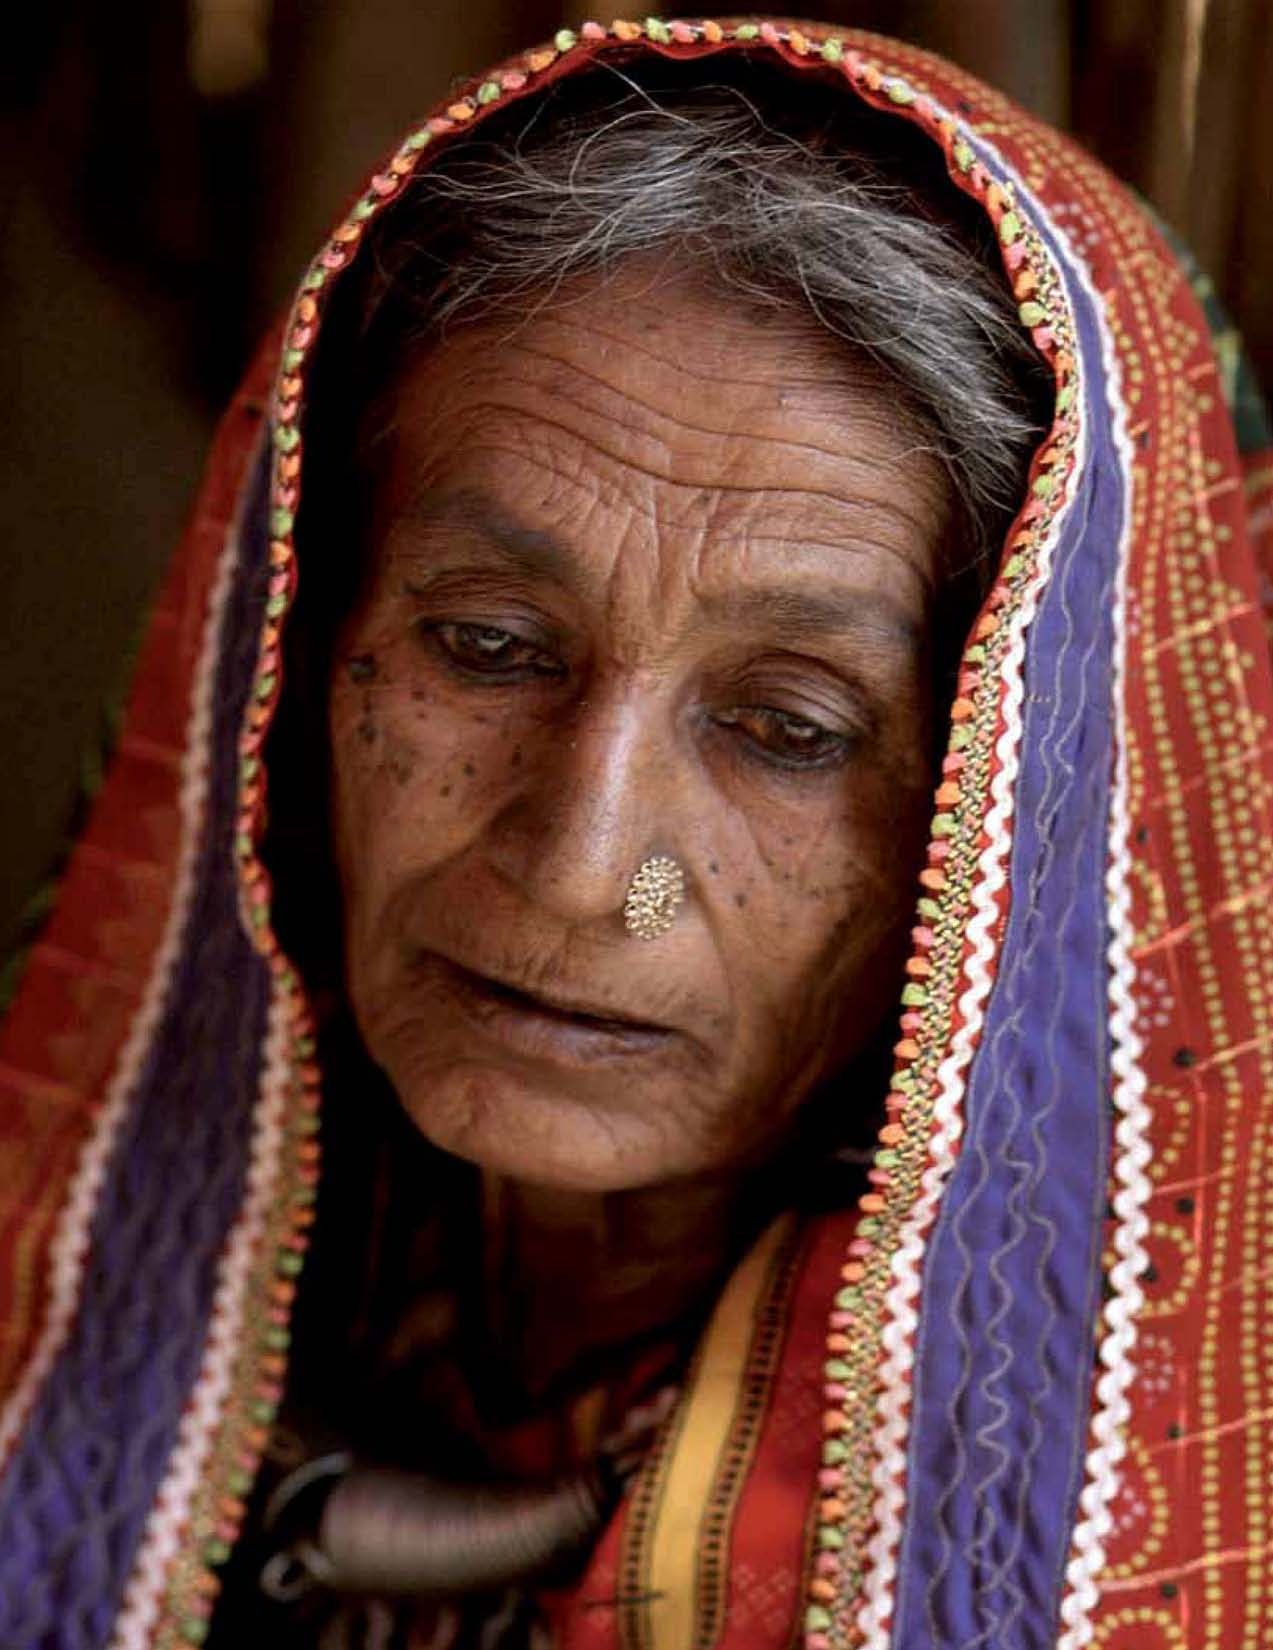 Pin by Natalie Rodgers on Elderly Middle Eastern Women